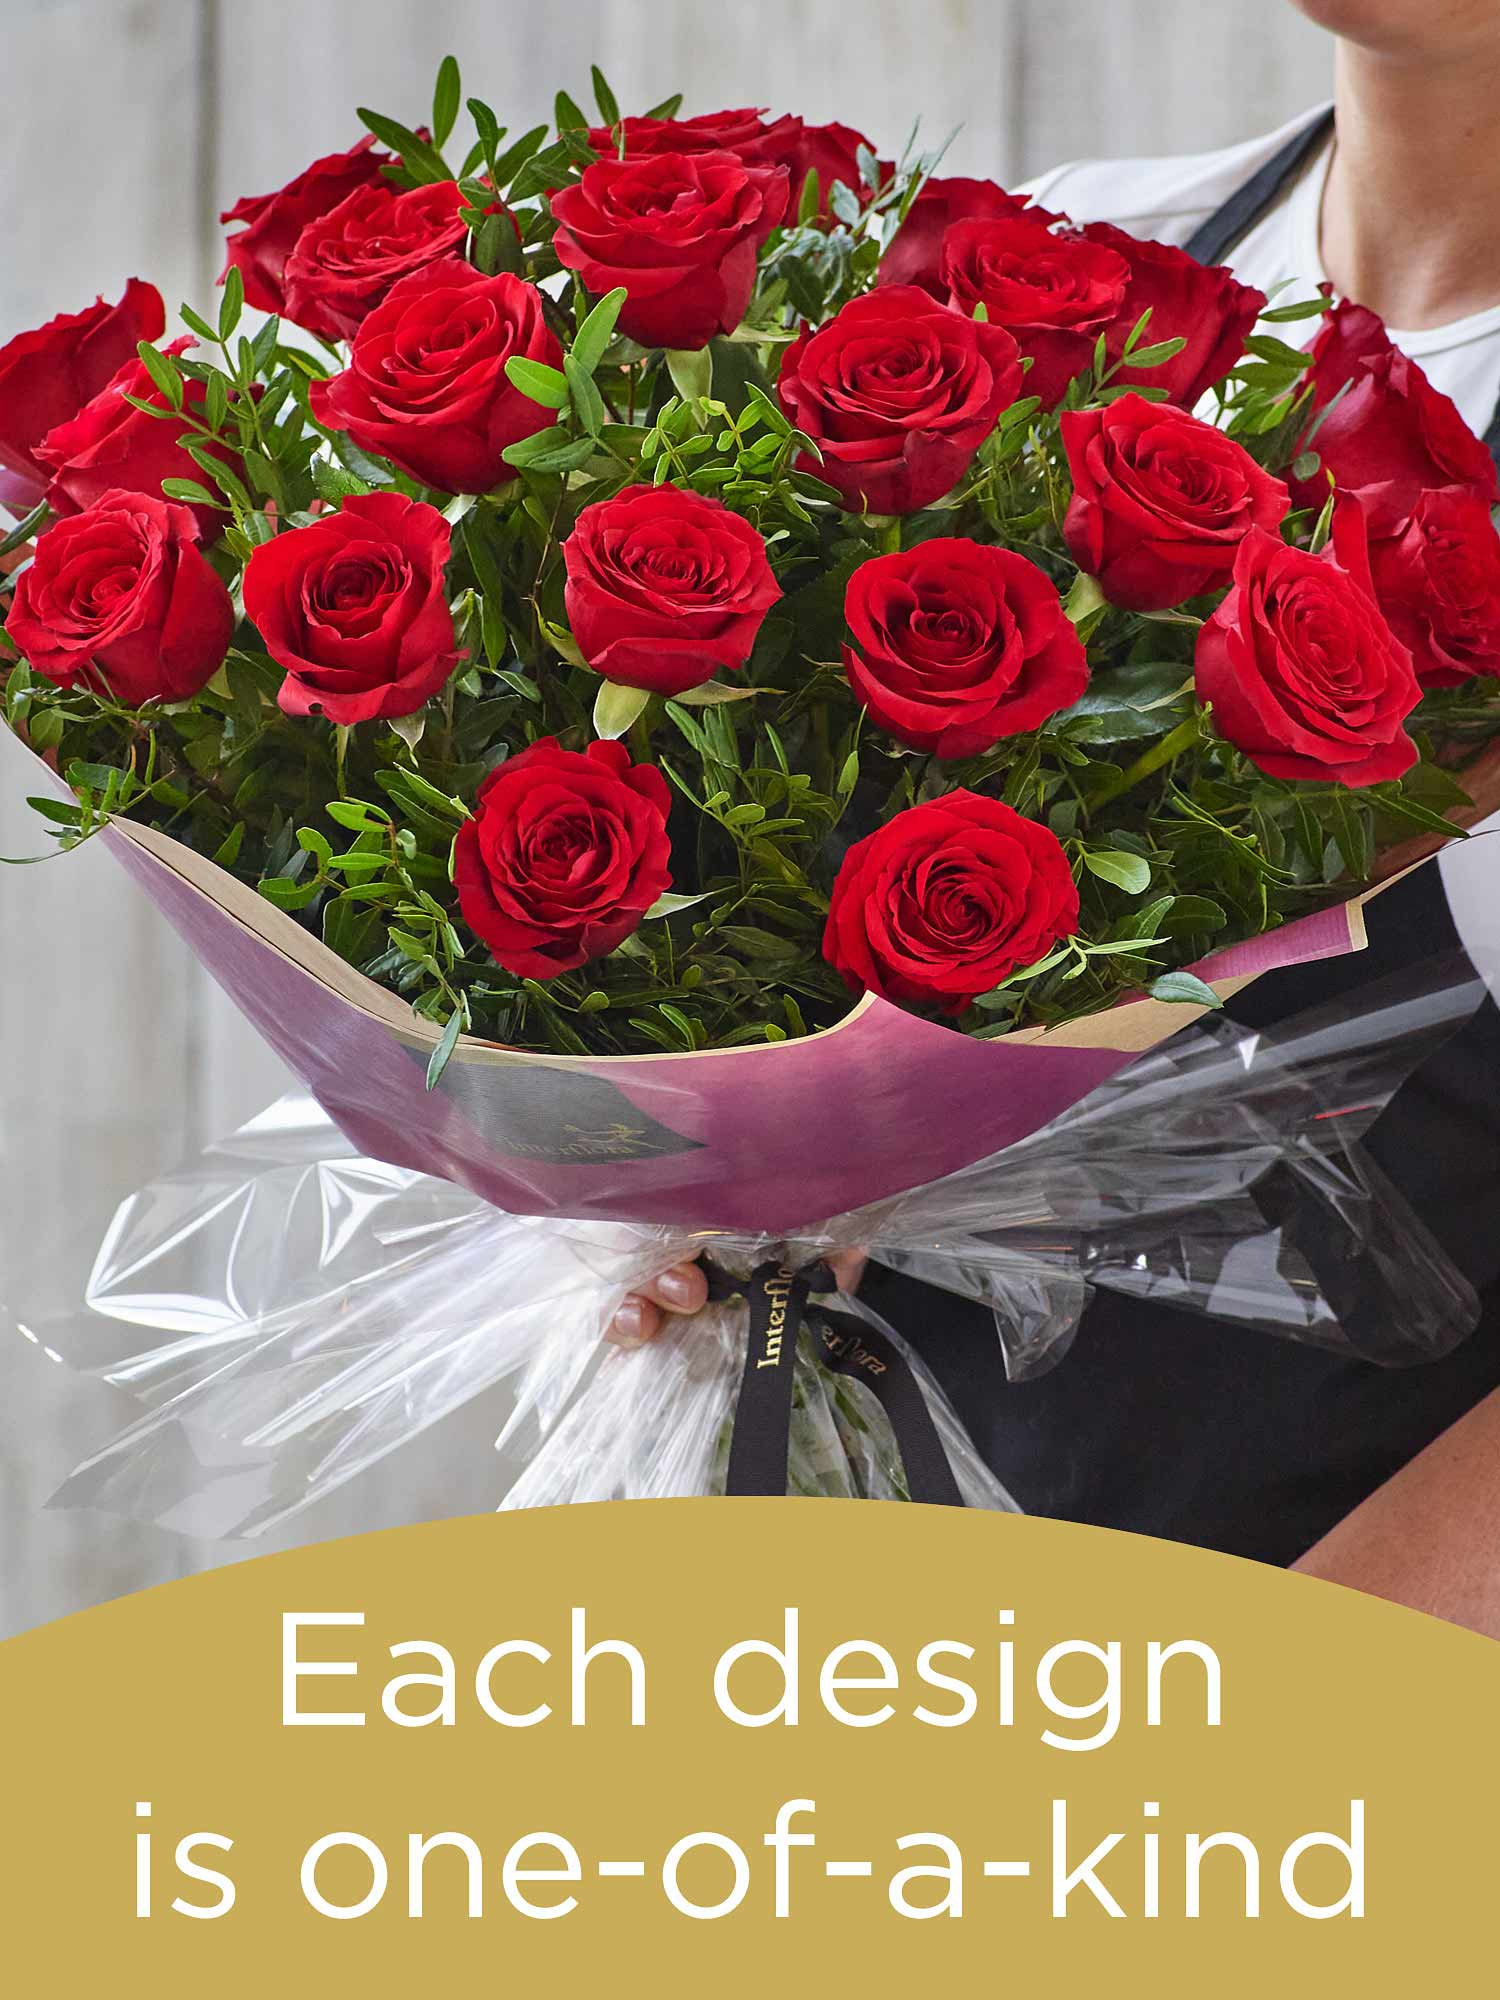 Valentine's 24 red rose hand-tied bouquet Flower Arrangement